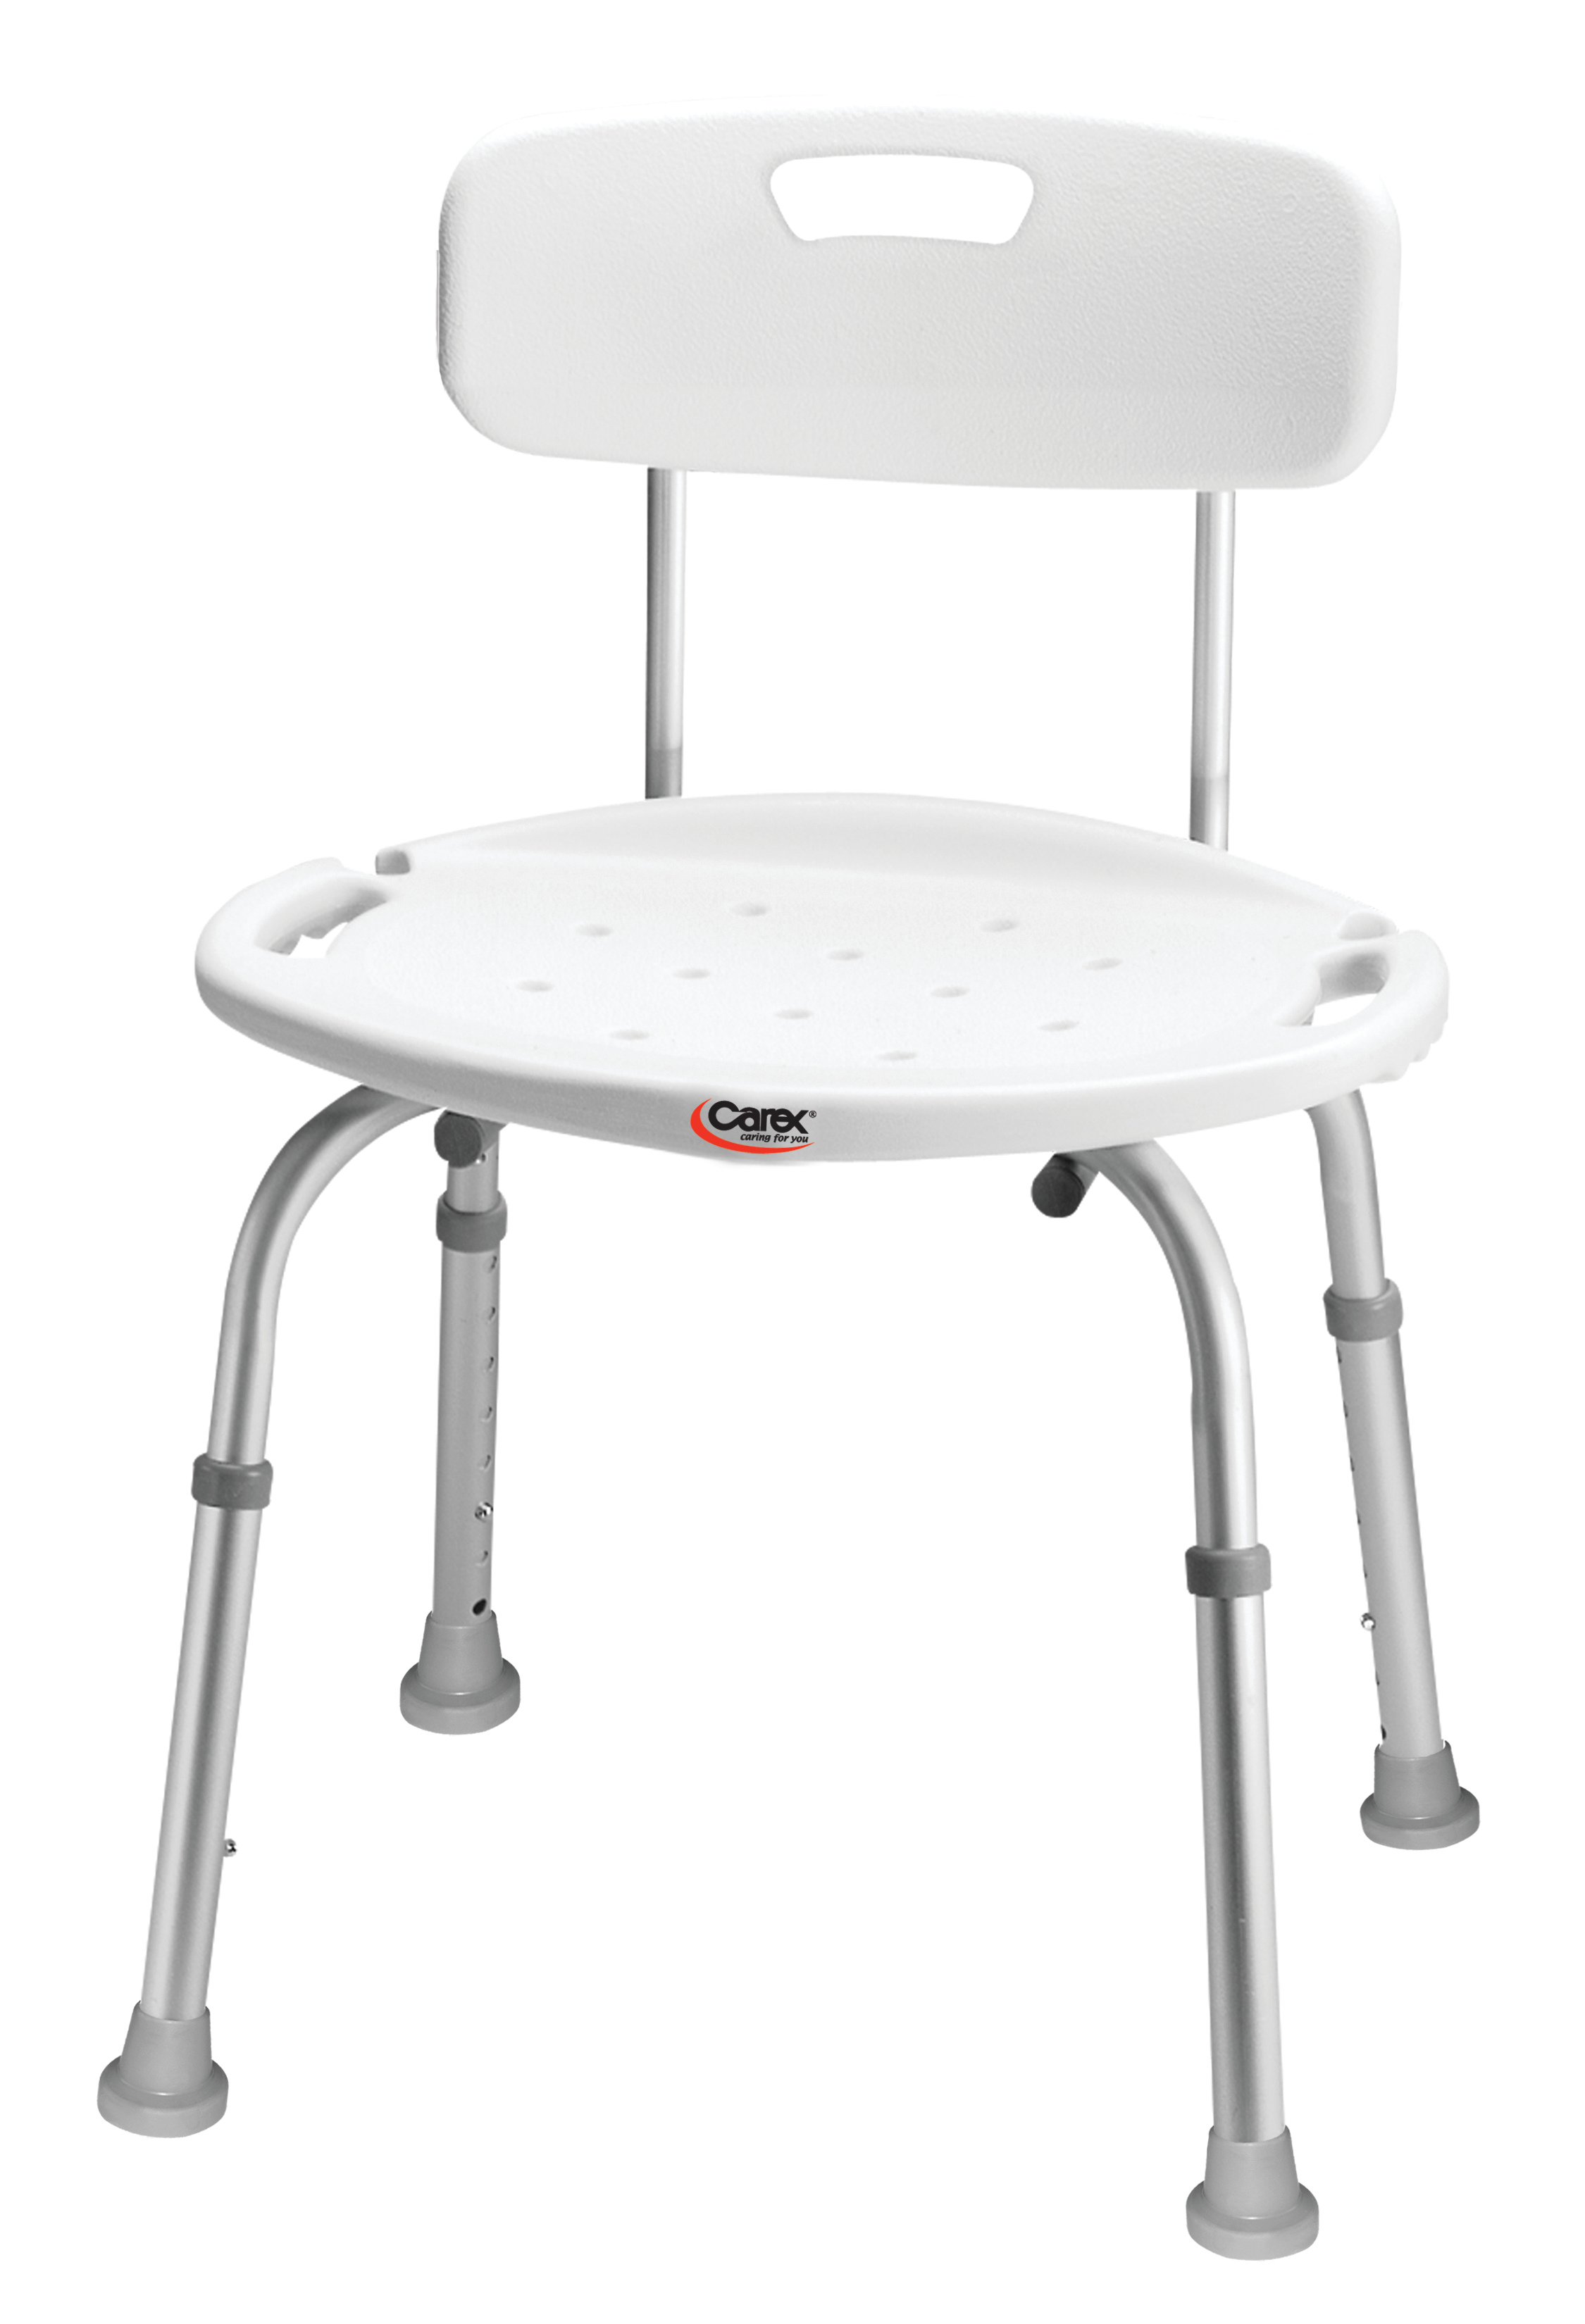 carex adjustable shower chair bath seat with back